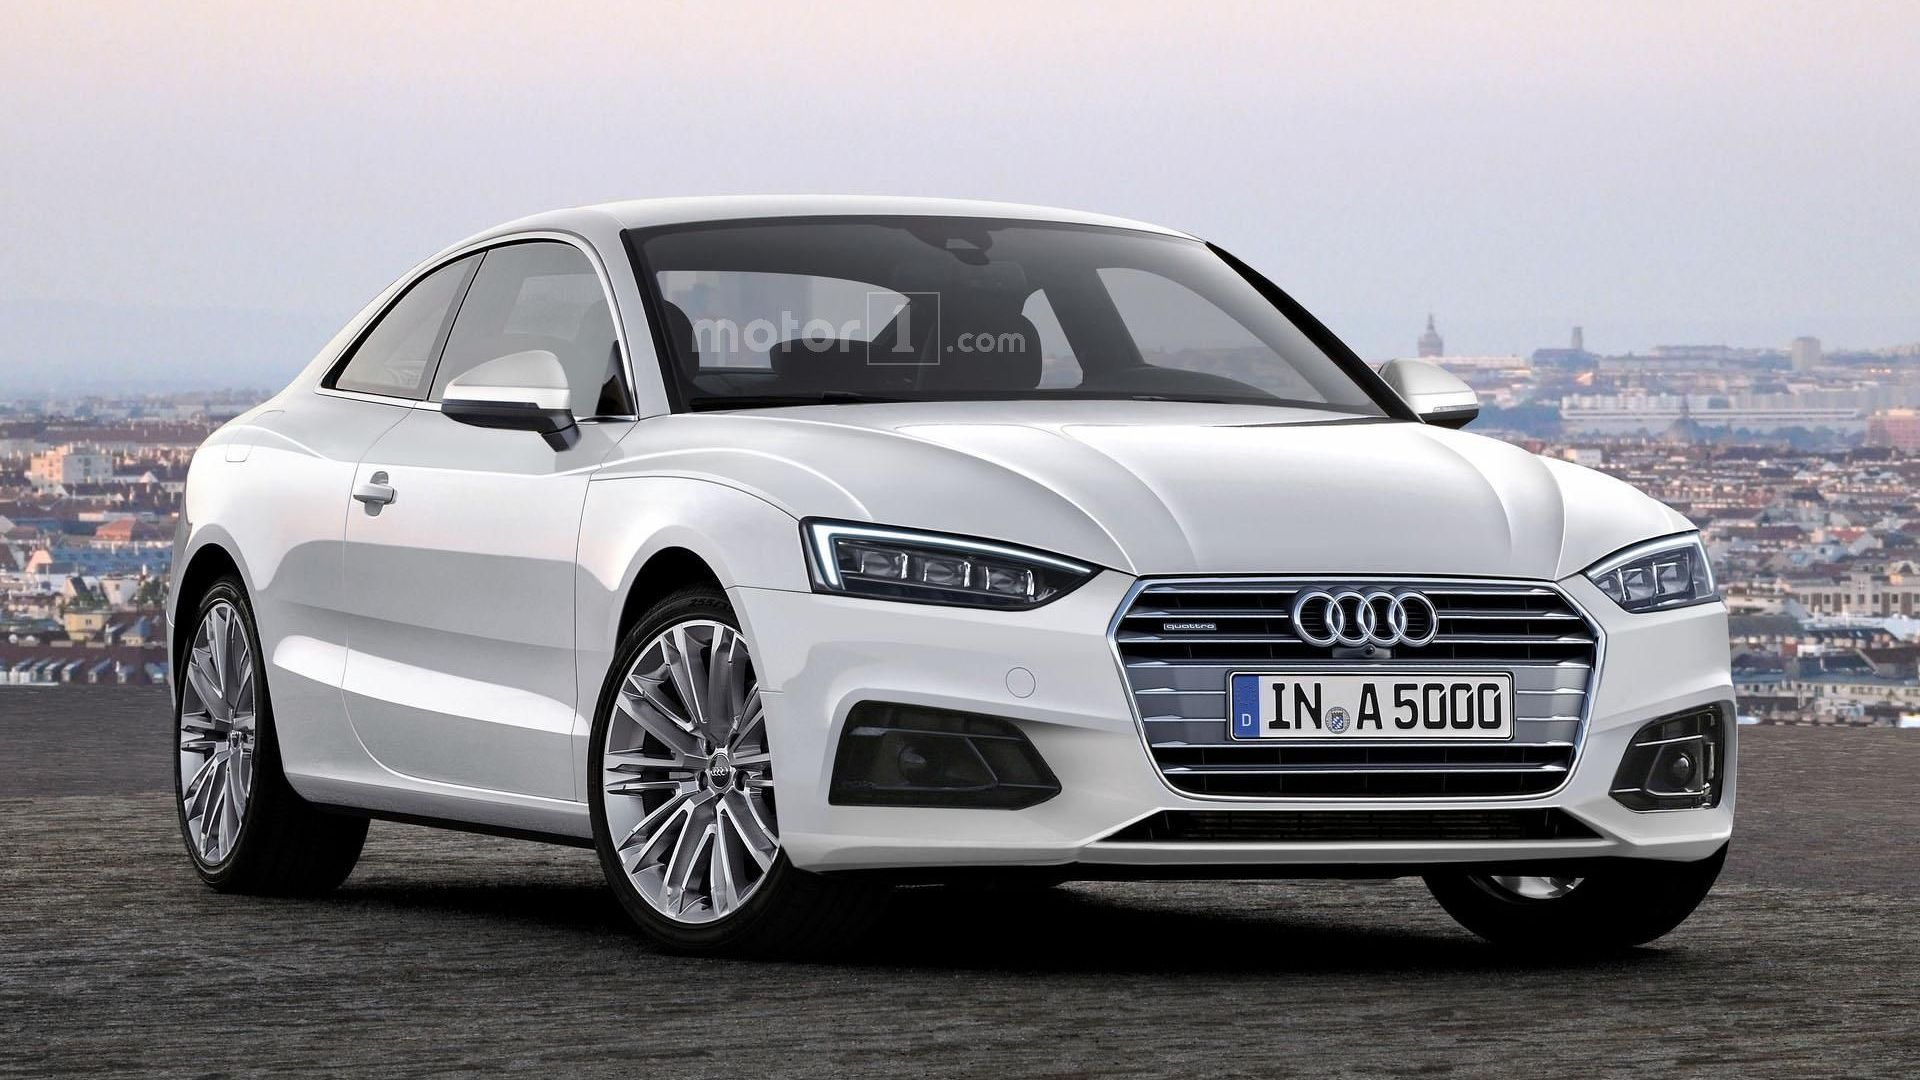 2017 Audi A5 Coupe Looks Rather Stylish In New Rendering Wiring Diagram